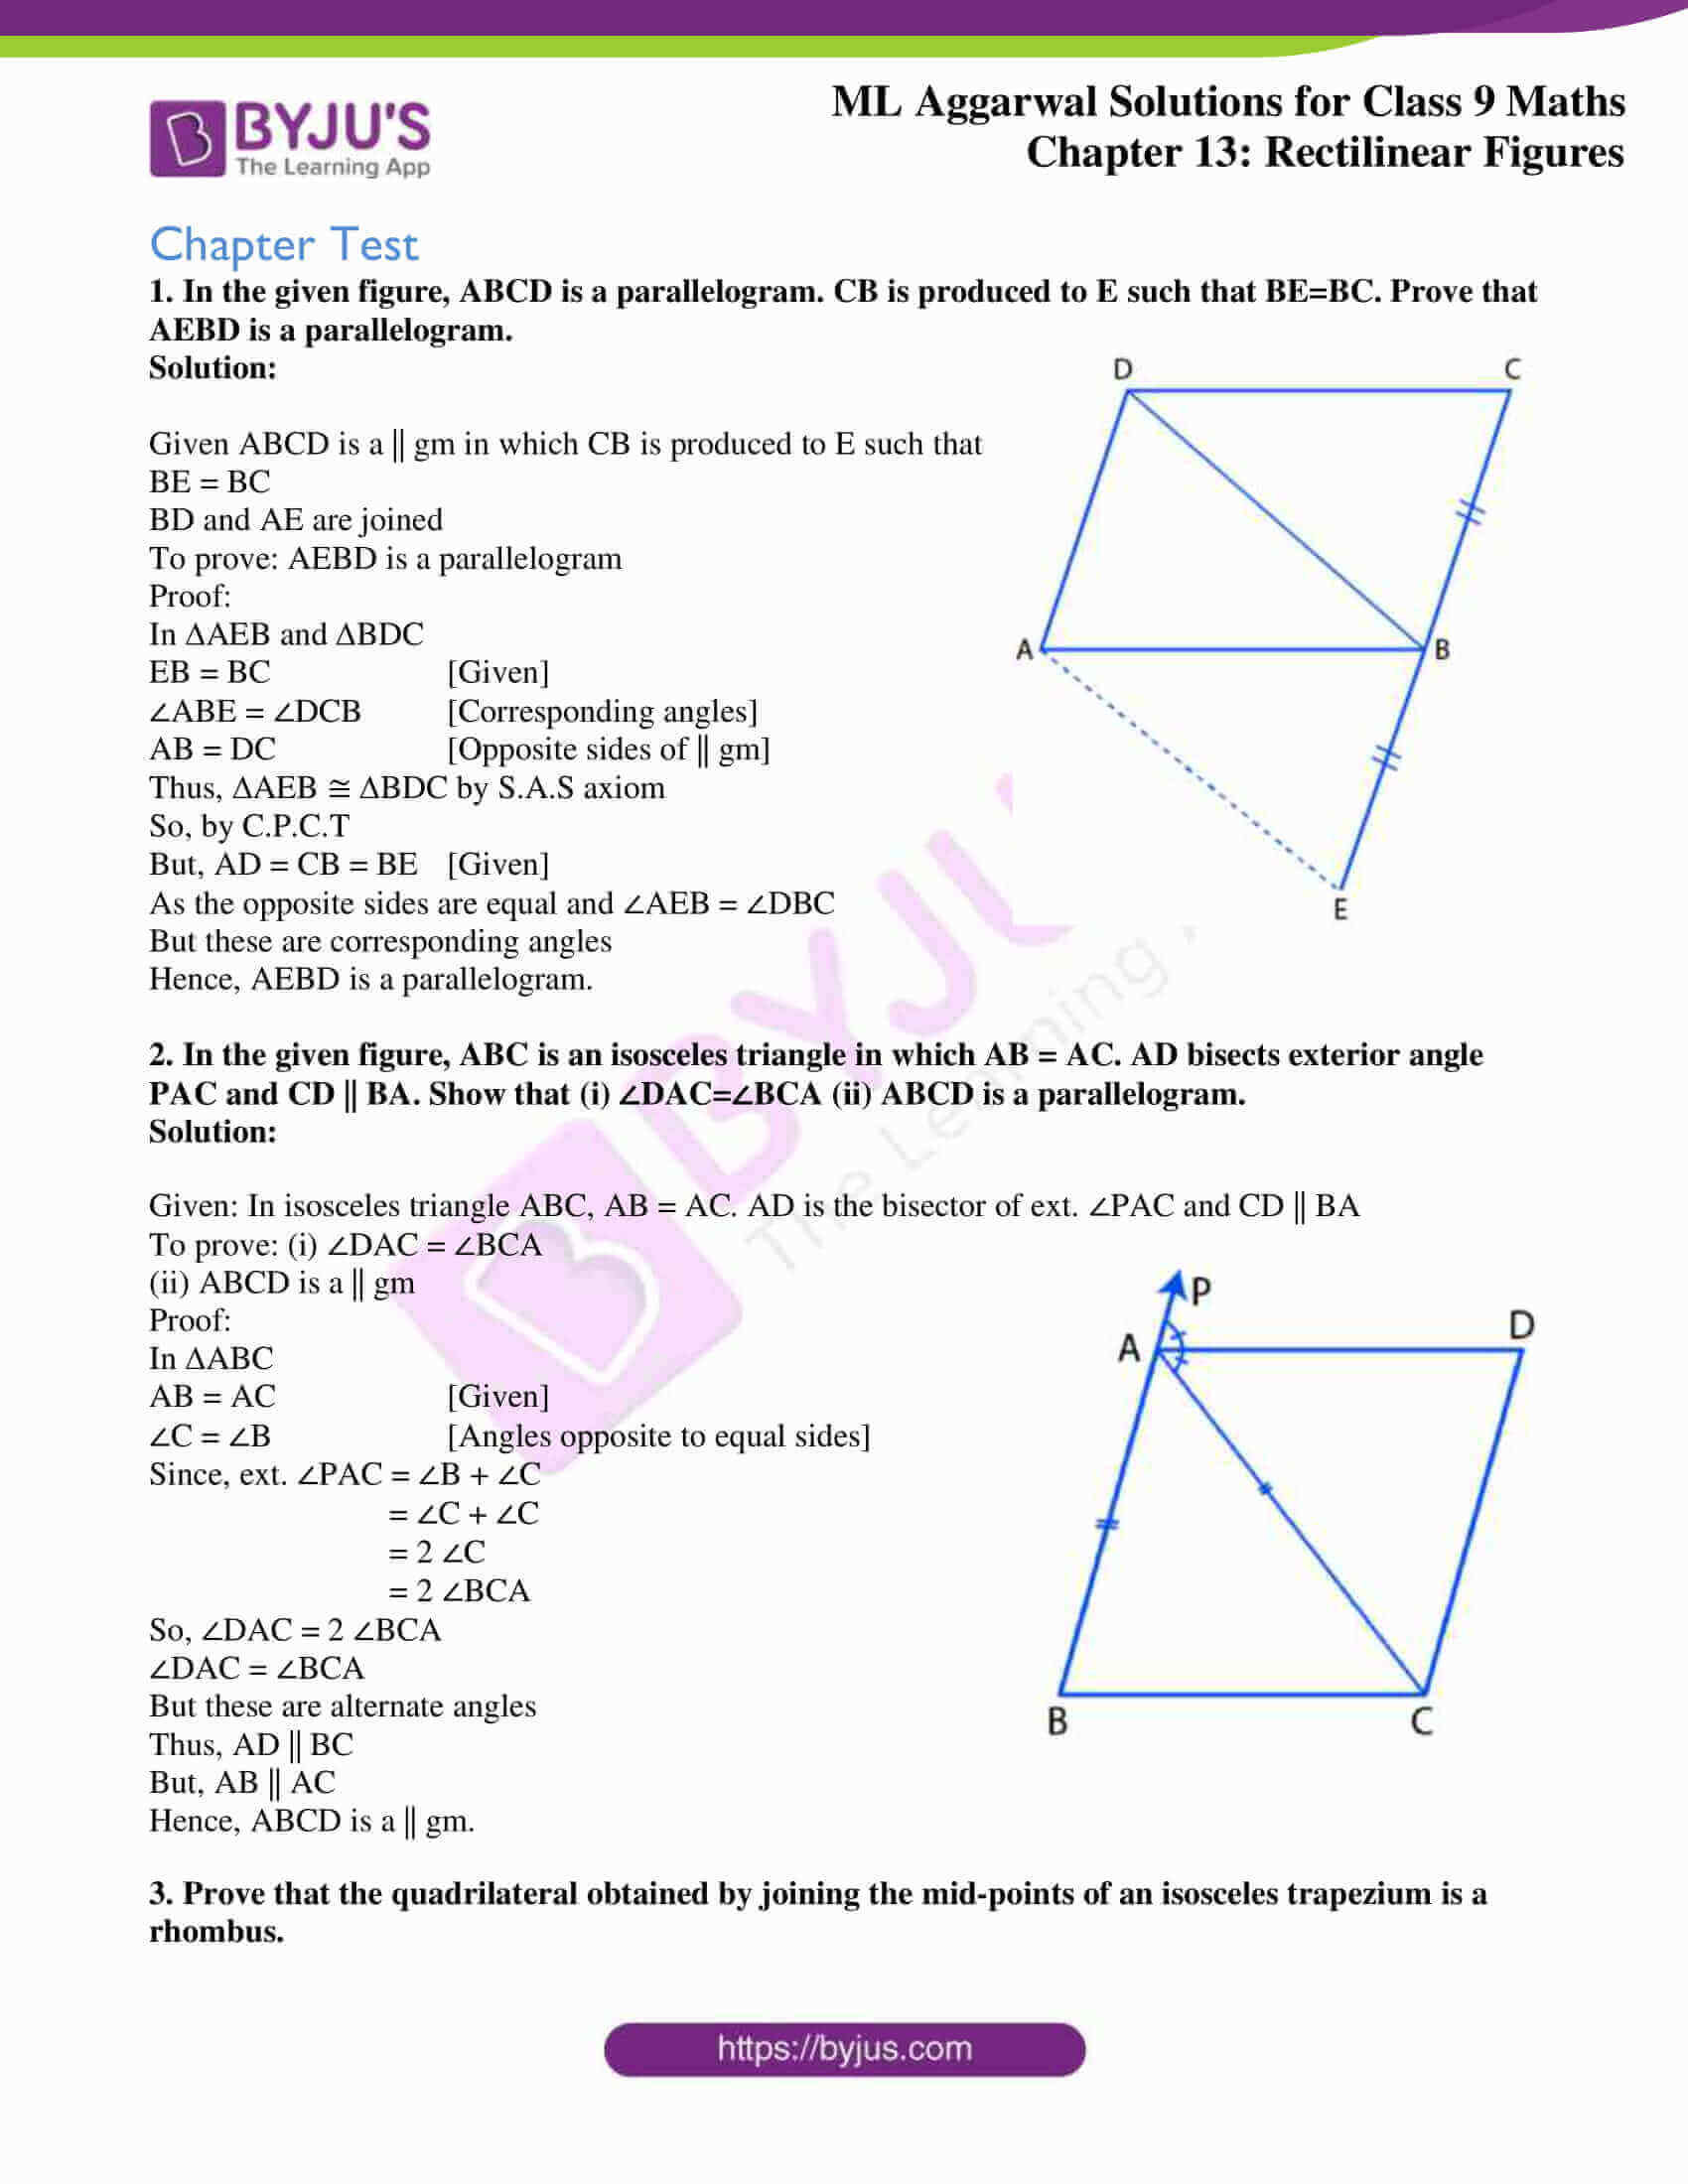 ml aggarwal solutions for class 9 maths chapter 13 39